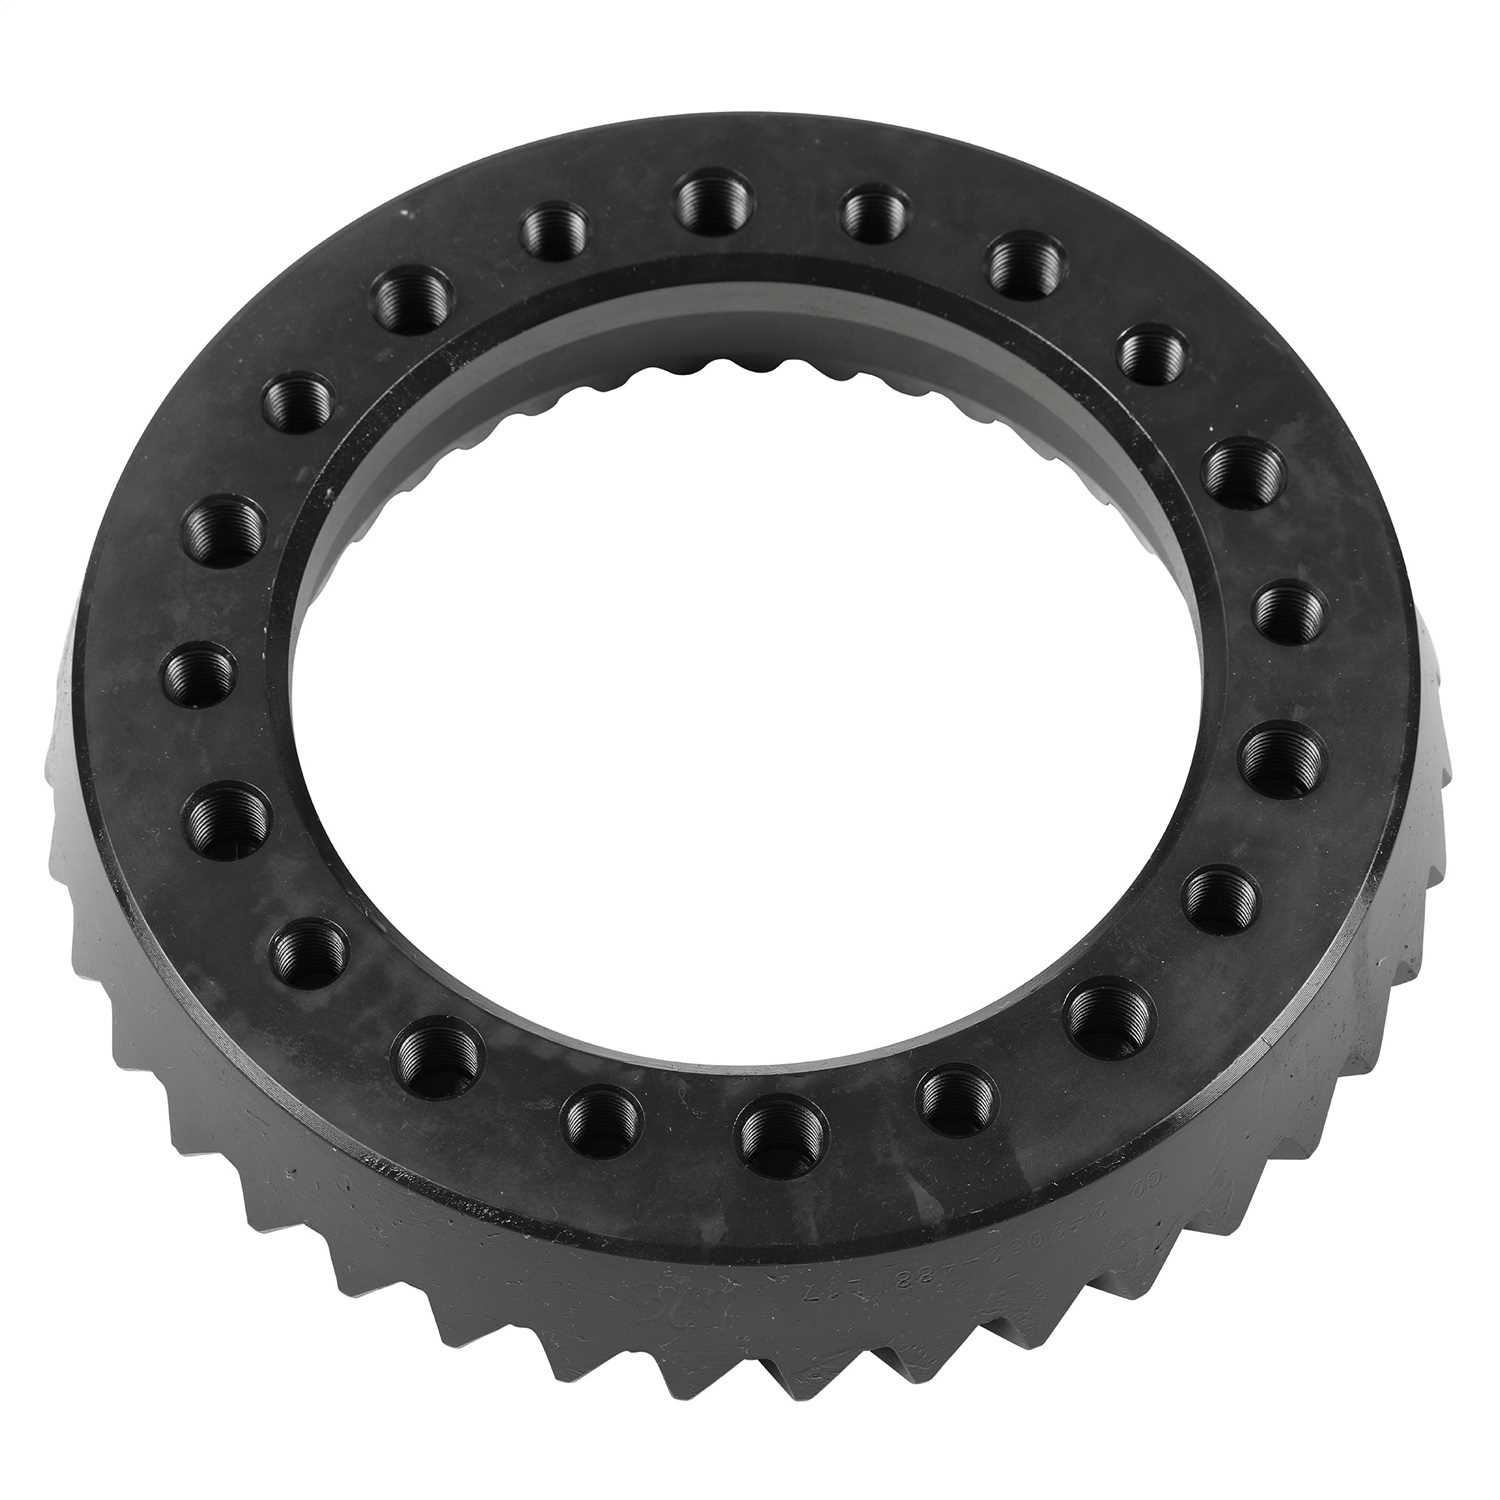 1-2149-456 G2 Axle and Gear Ring and Pinion Set